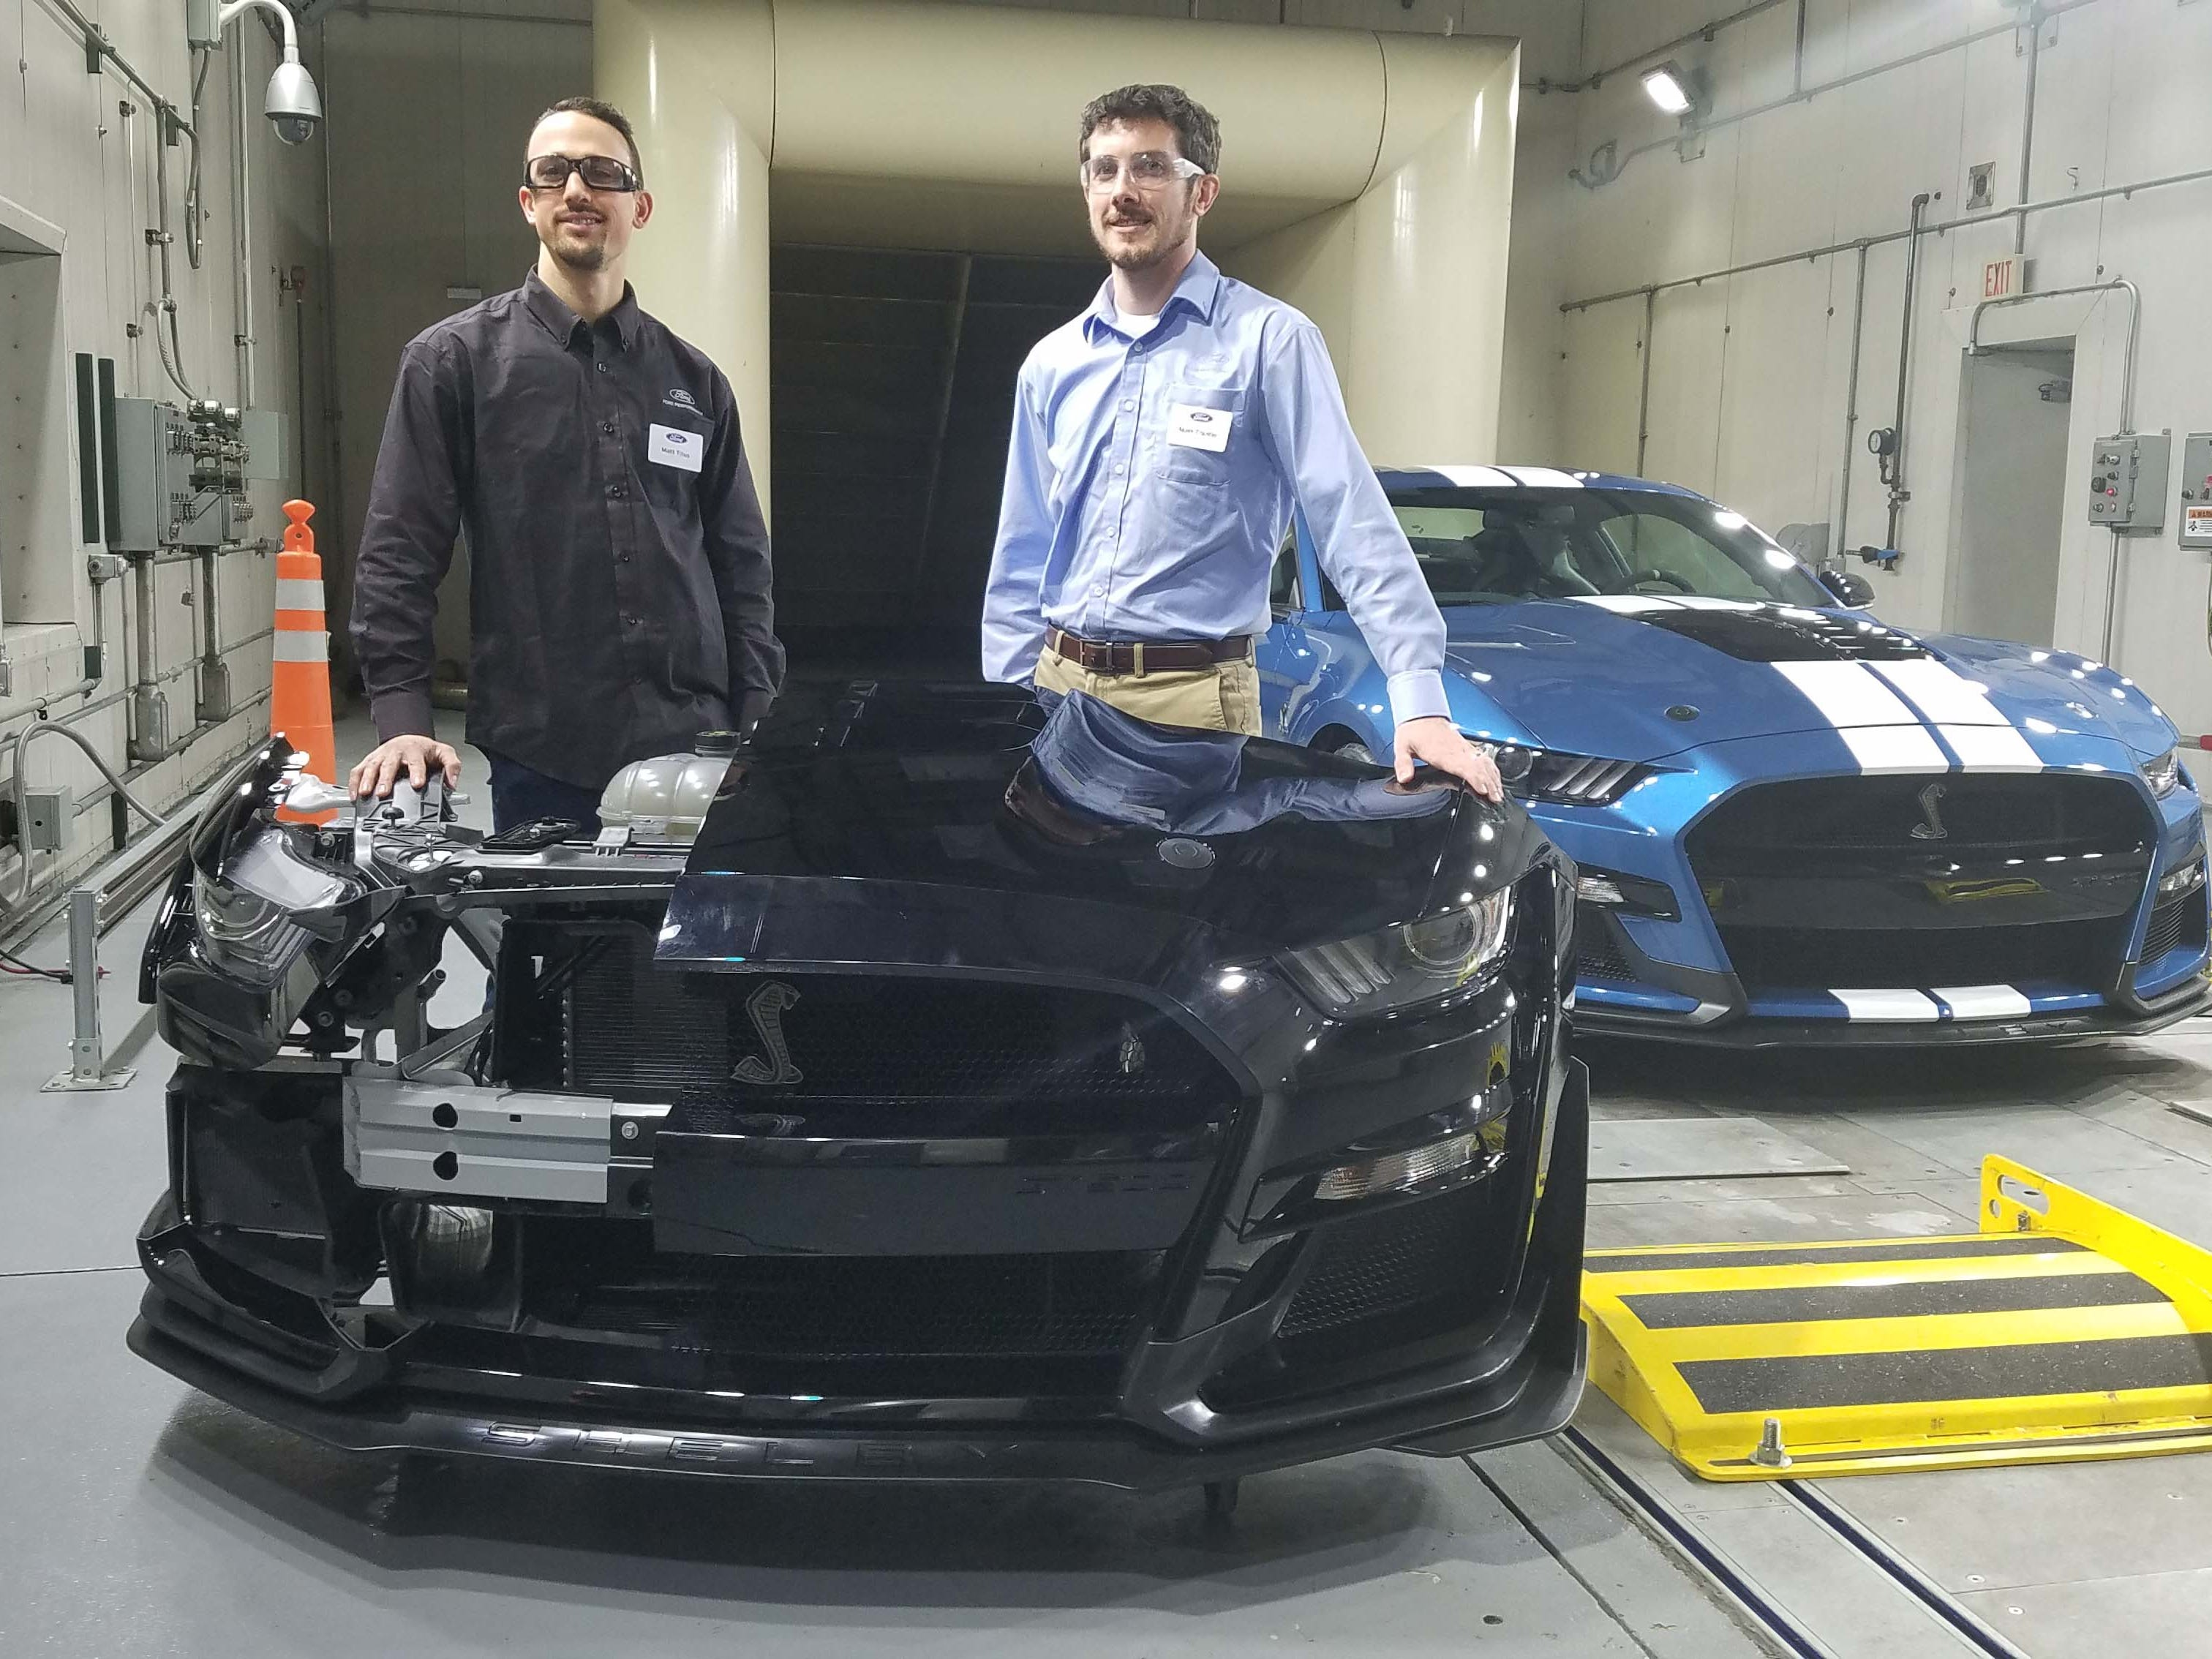 Ford Performance engineers Matt Titus (left) and Matt Trantor show off the unique front clip developed for the Ford Mustang GT500. The front clip contains 6 heat exchangers to cool the 700 hp engine behind it.